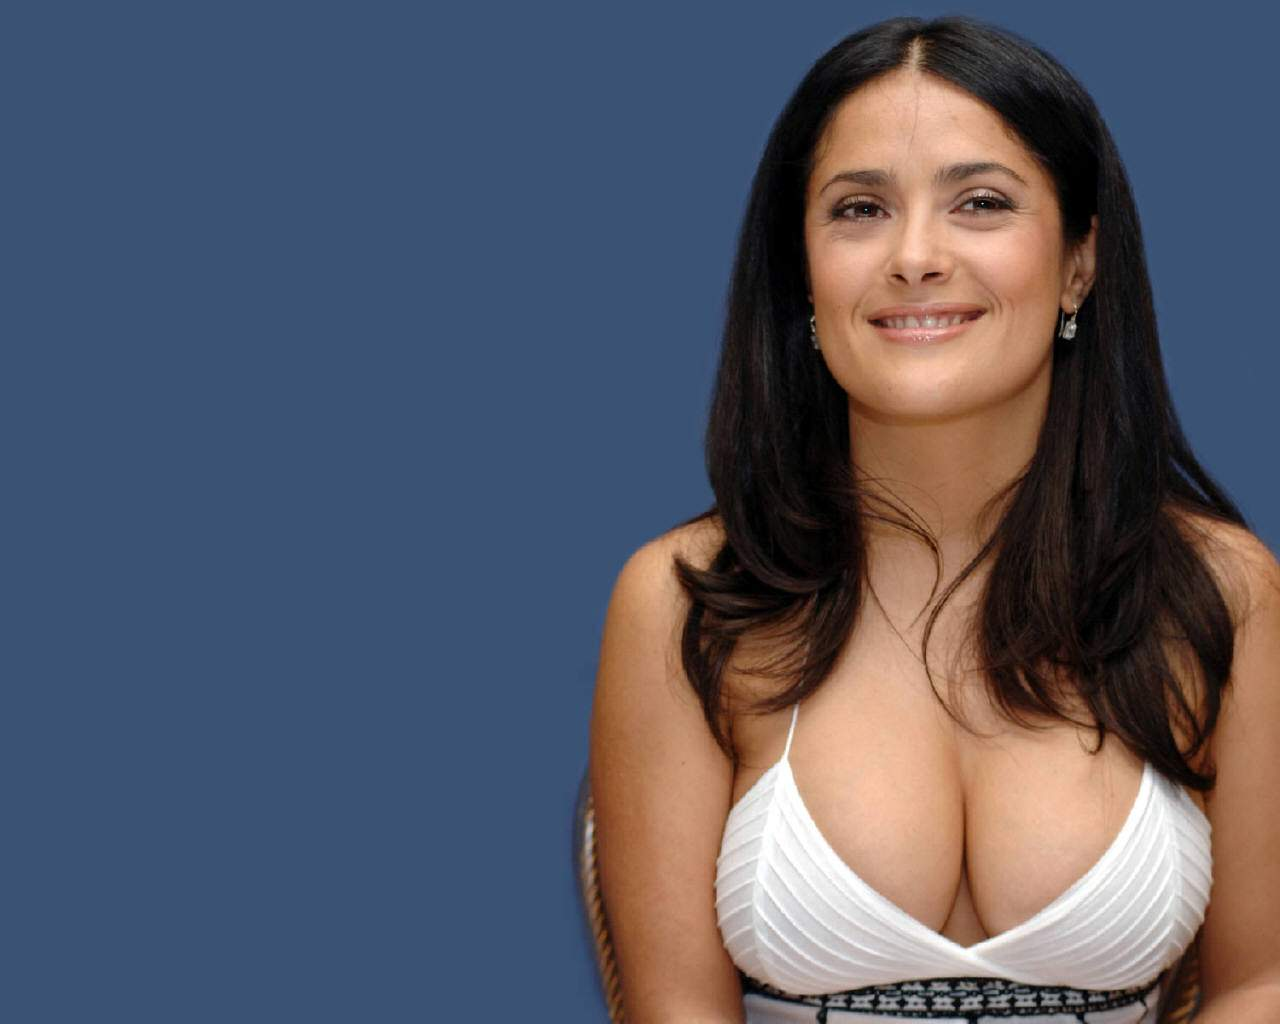 Related Posts Salma Hayek Topless